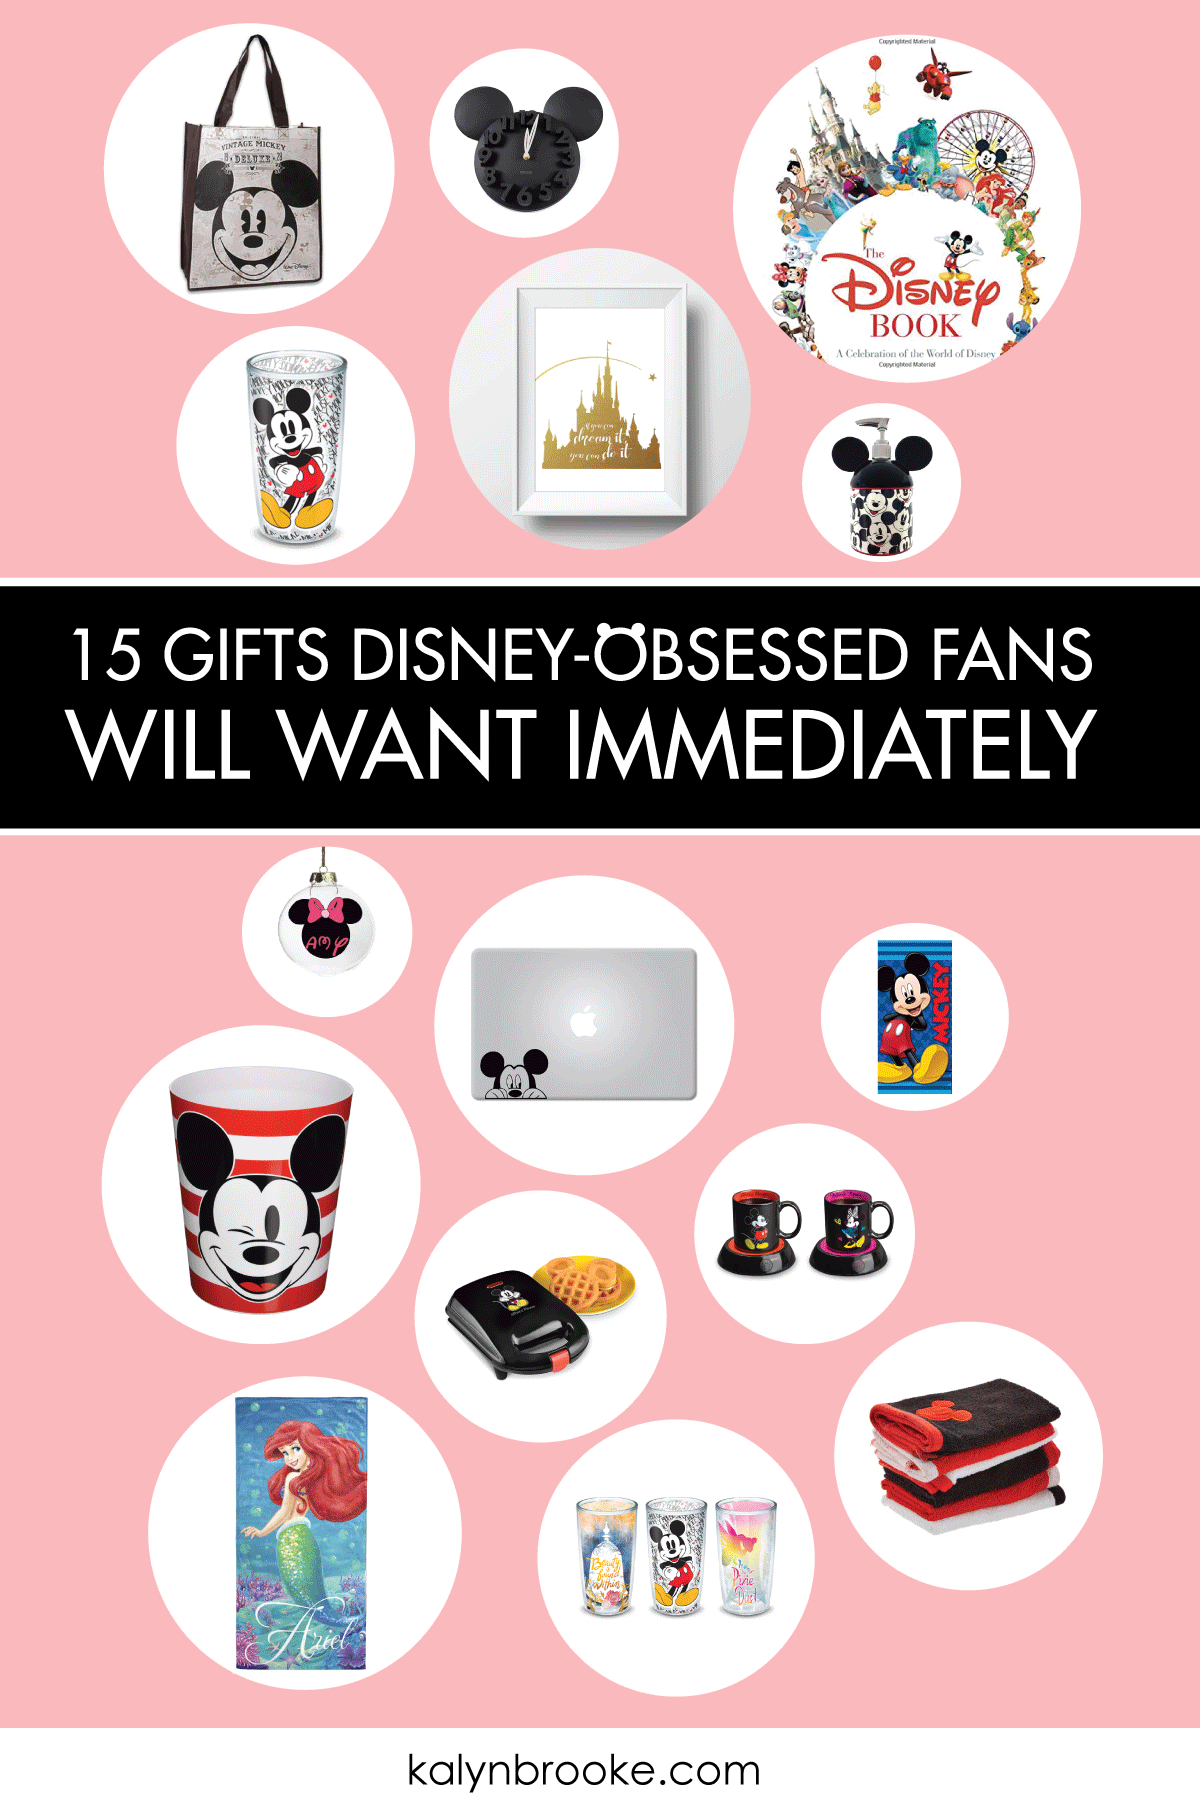 Use this Disney Gift Guide as your one stop shop for the Disney-obsessed fan in your life. With 15 awesome and affordable options to reignite that one-of-a-kind Disney magic, you're sure to make everyone feel like a kid again!